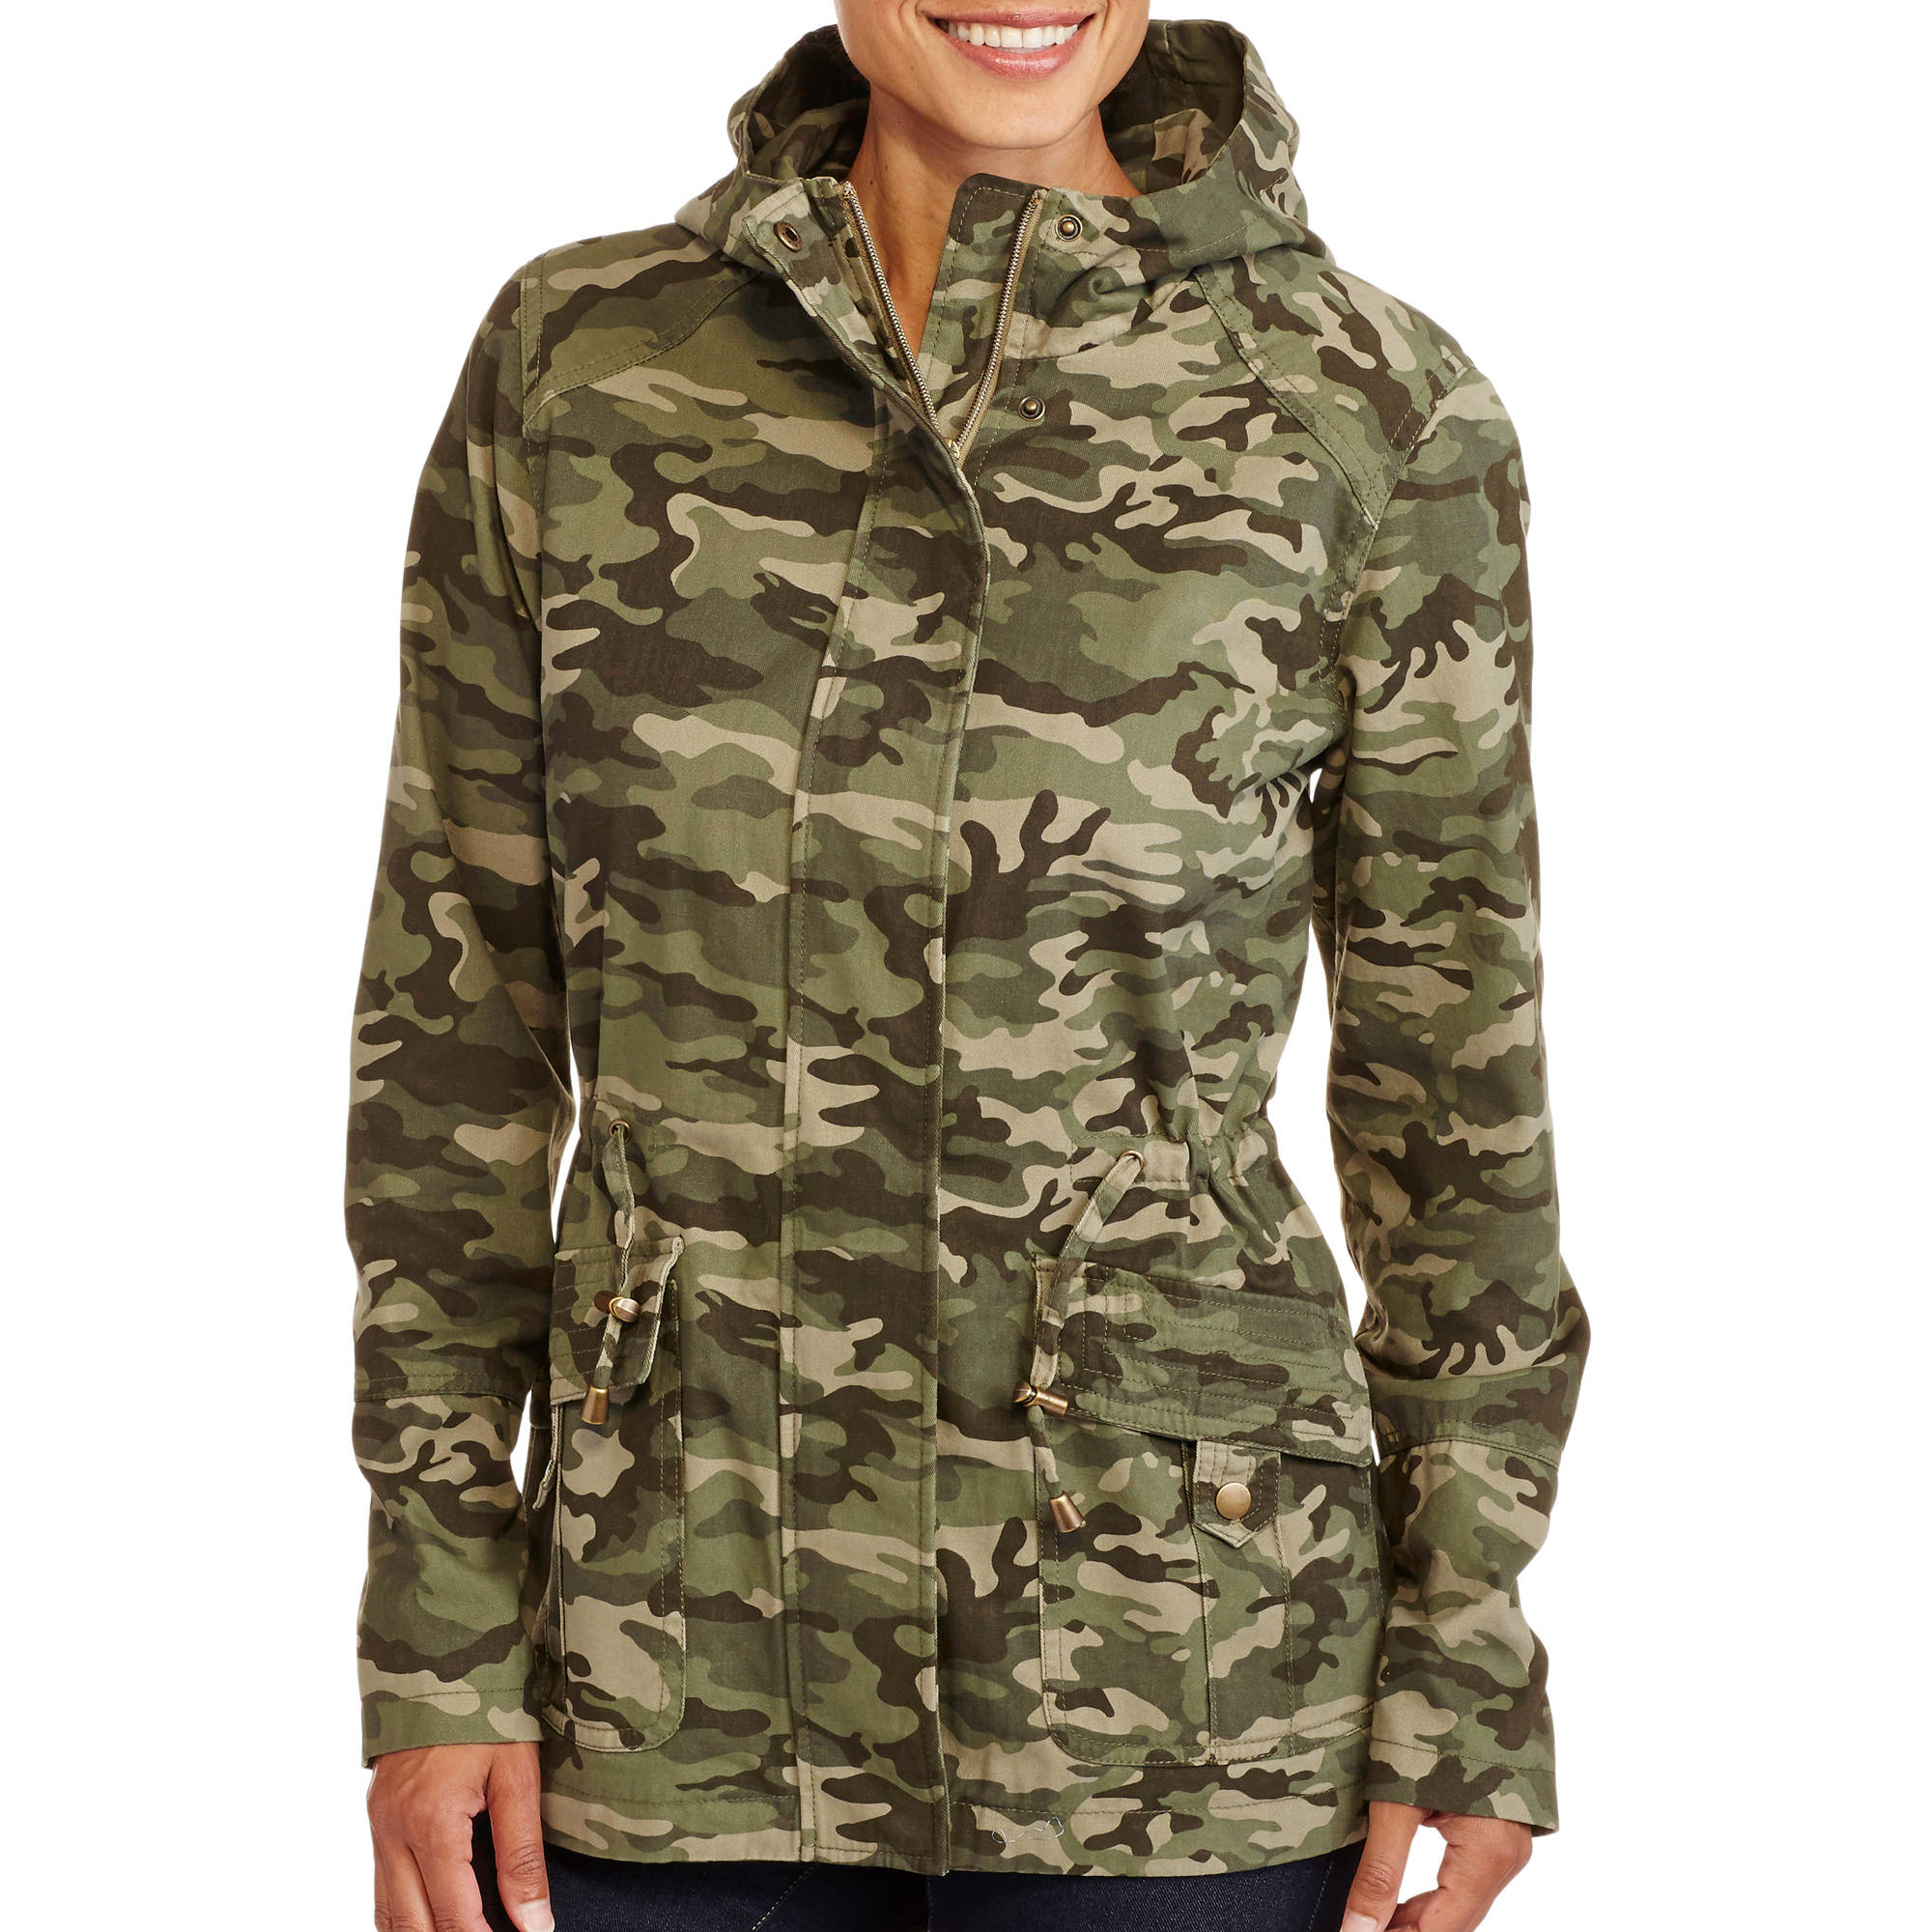 Faded Glory Women's Essential Canvas Anorak Jacket With Printed Lining